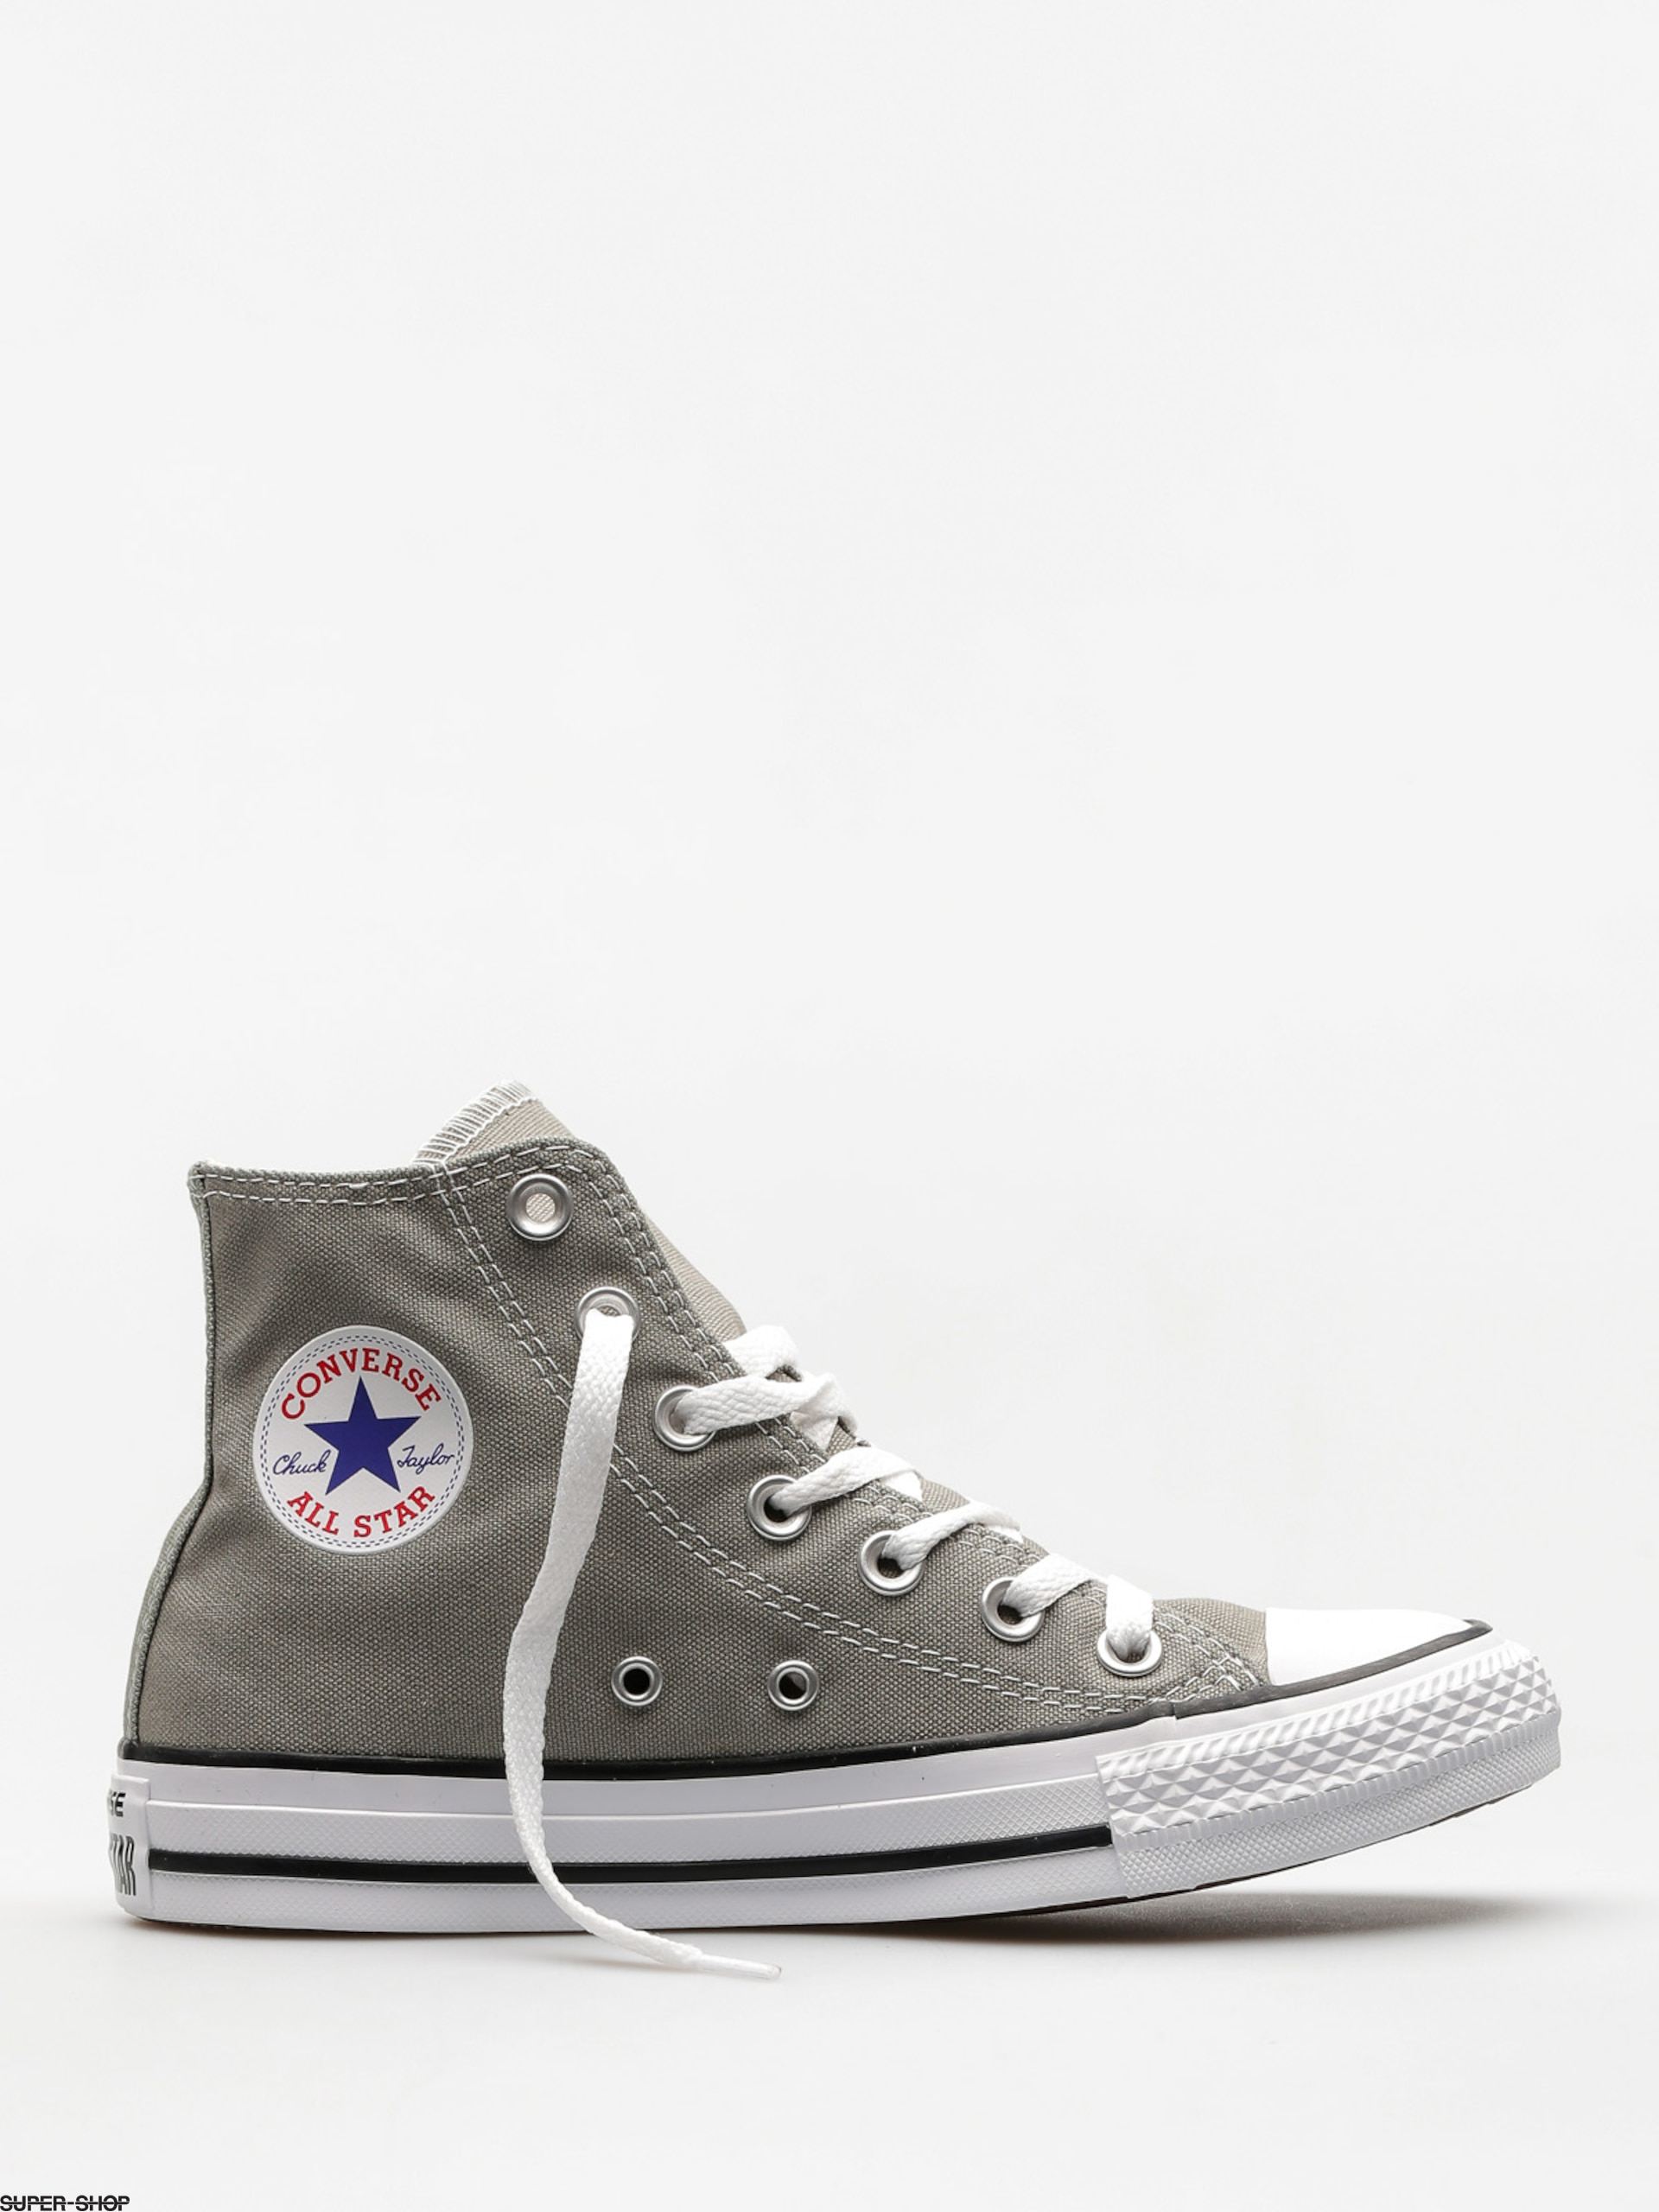 converse dark stucco